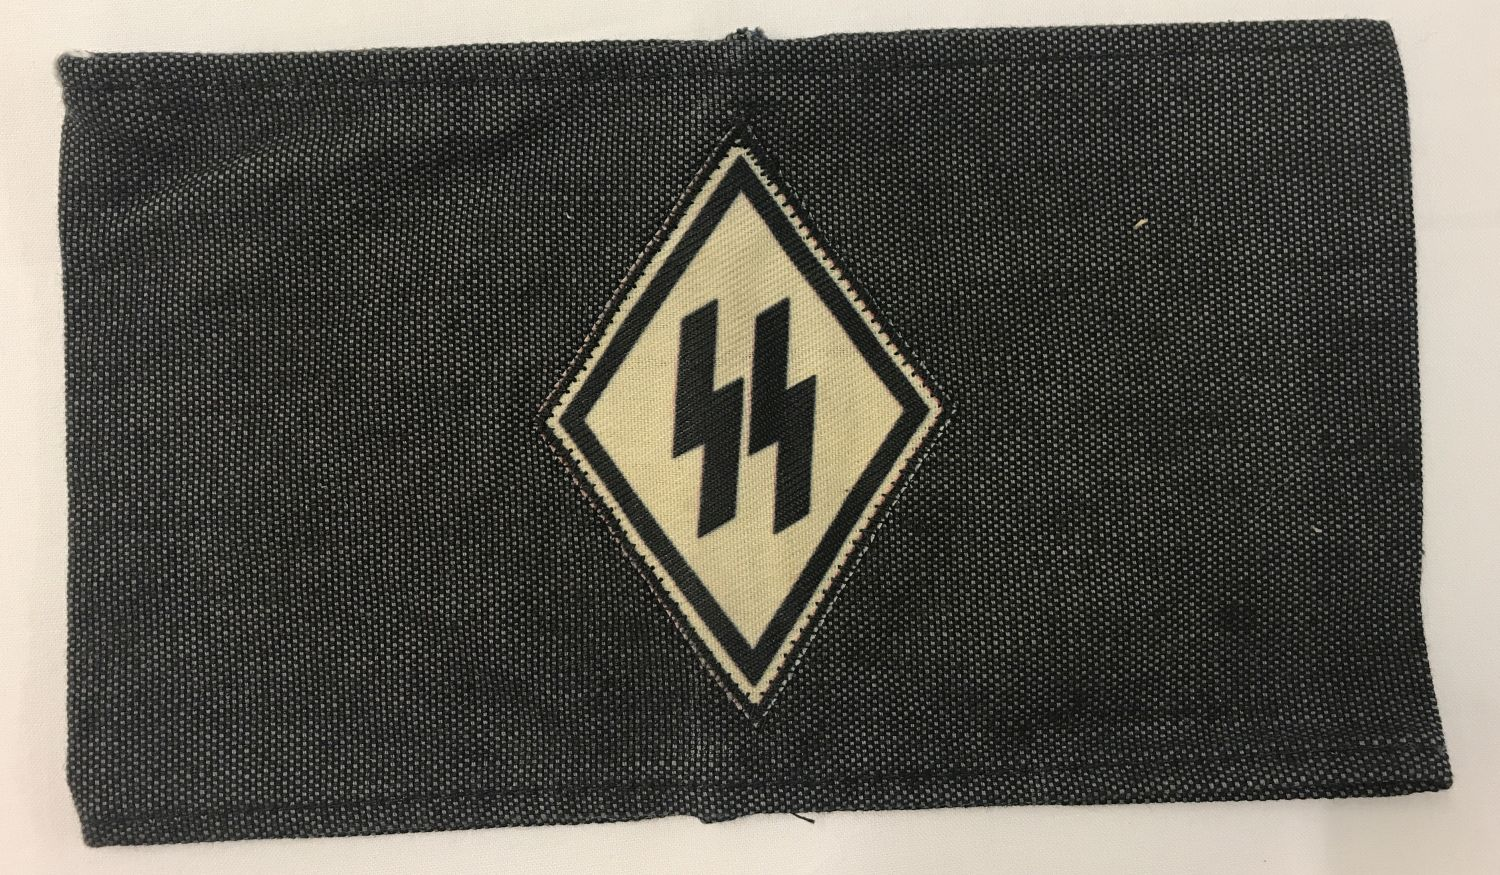 A copy of a German WWII SS VT funeral mourner's armband.